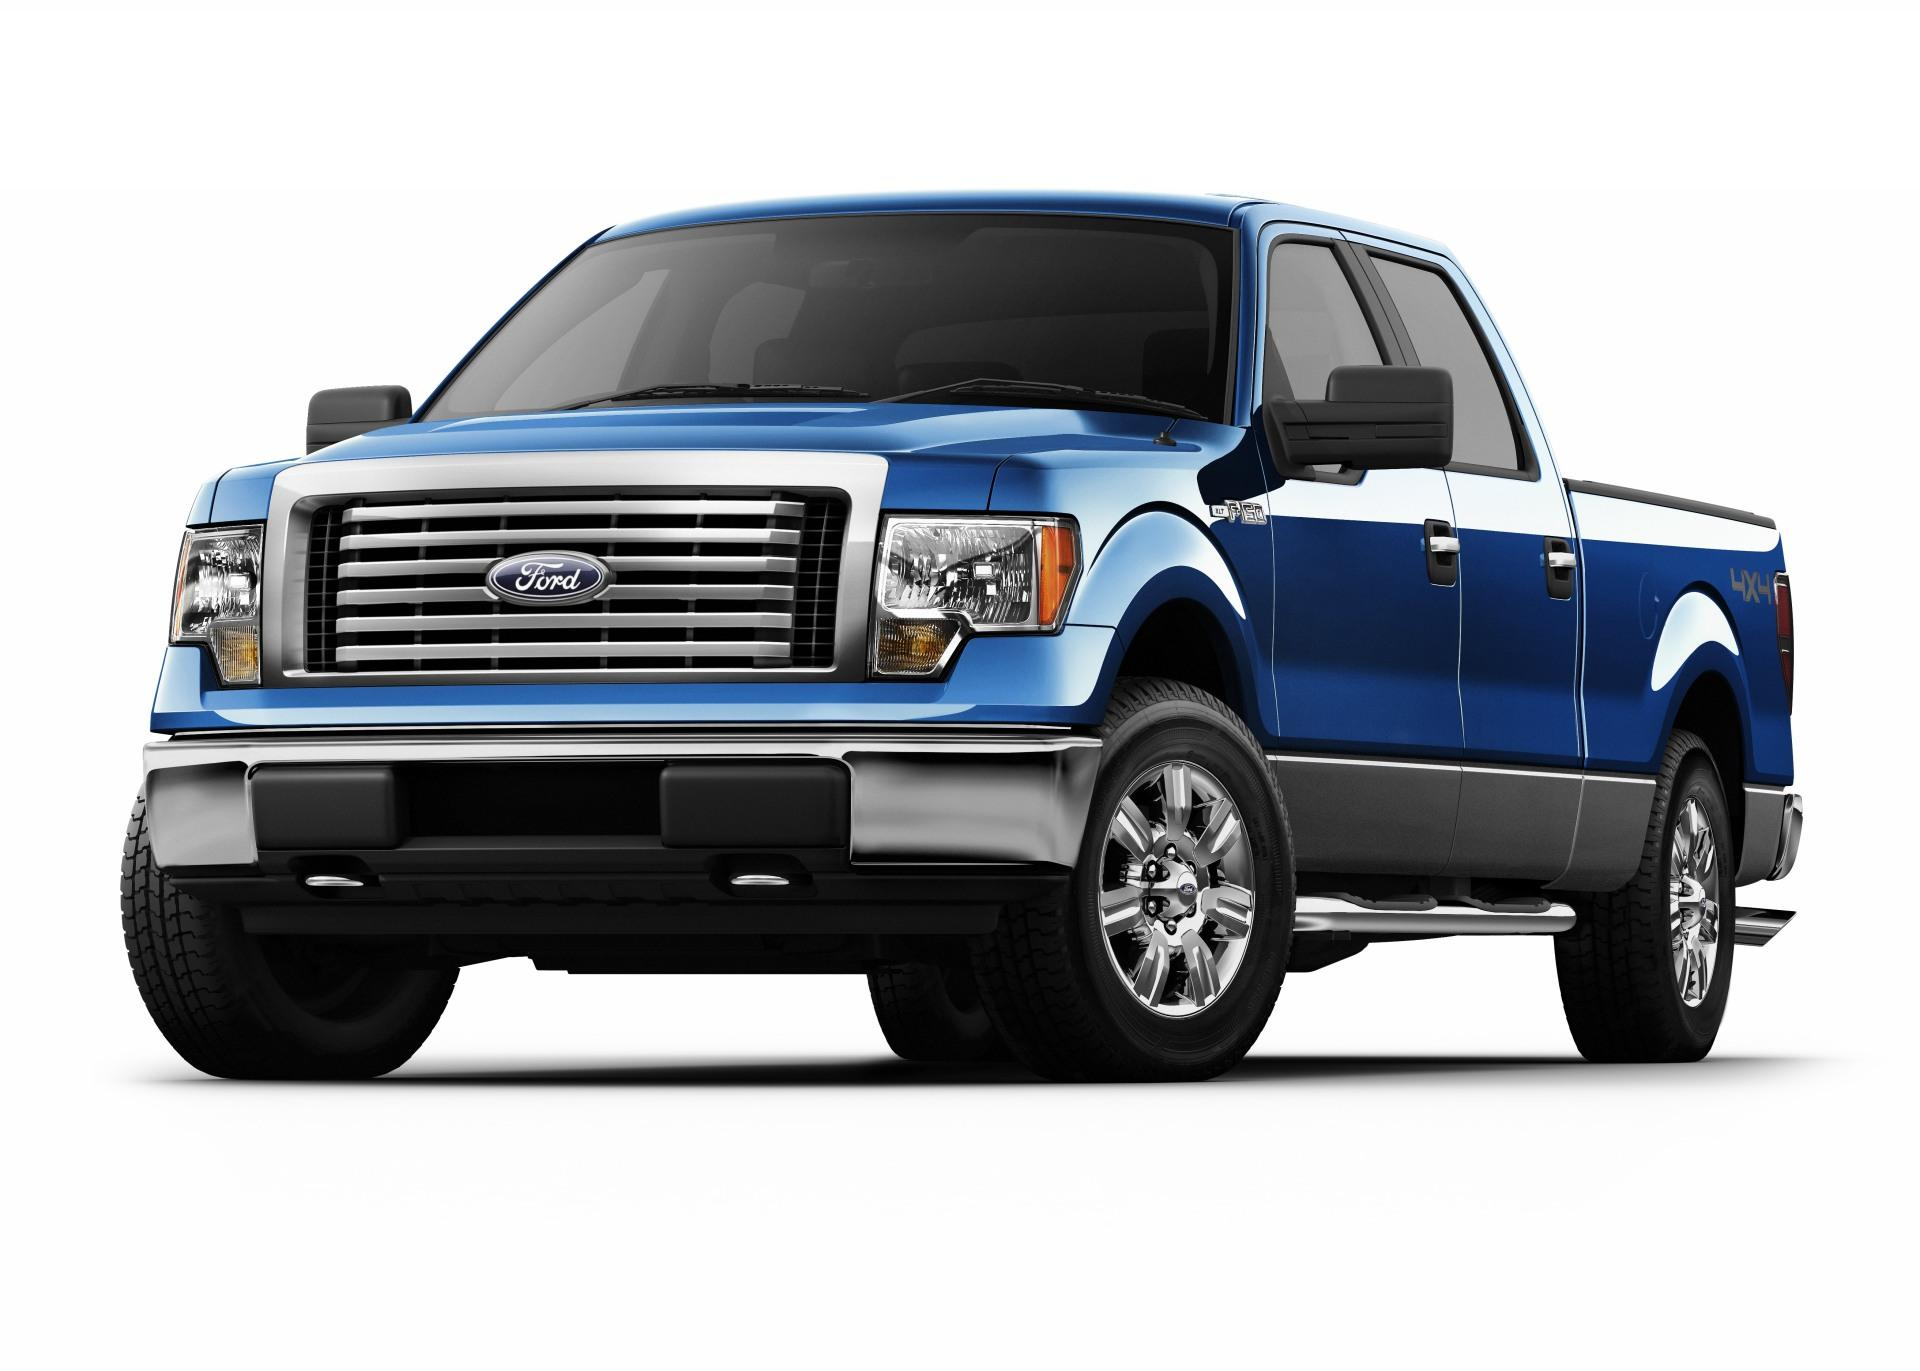 2010 ford f 150. Black Bedroom Furniture Sets. Home Design Ideas